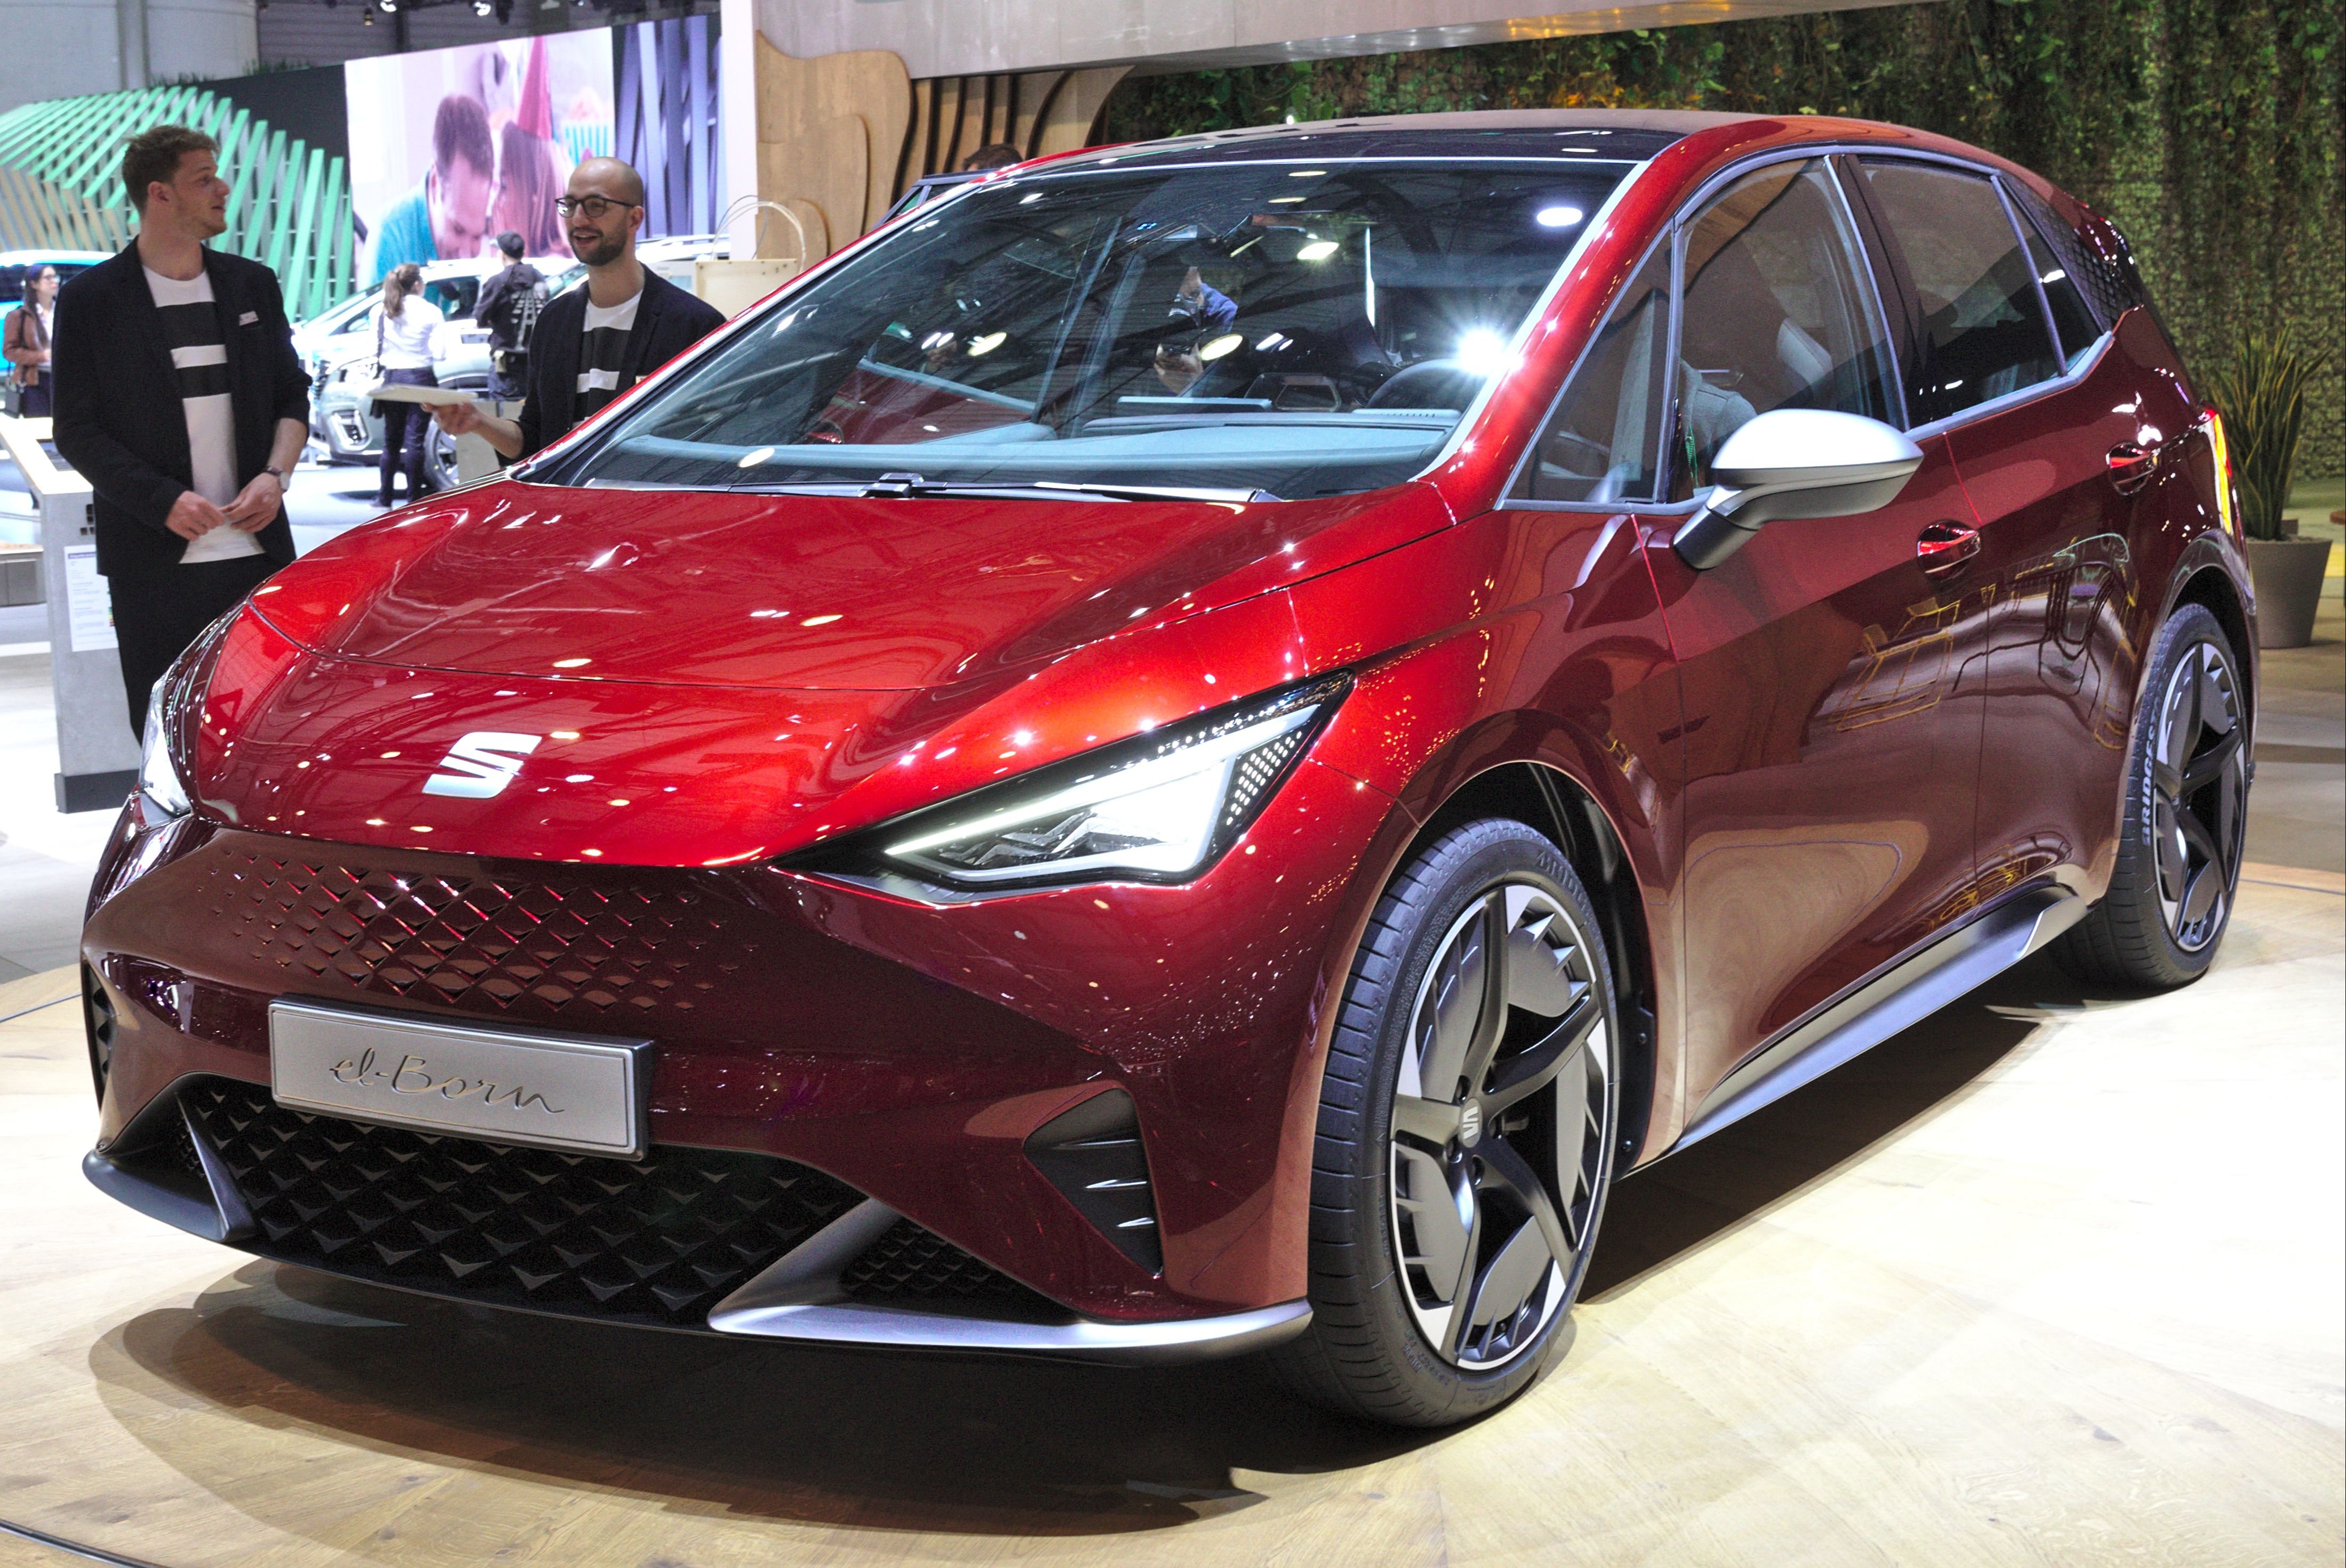 SEAT el born unveiling in red at Motor Show